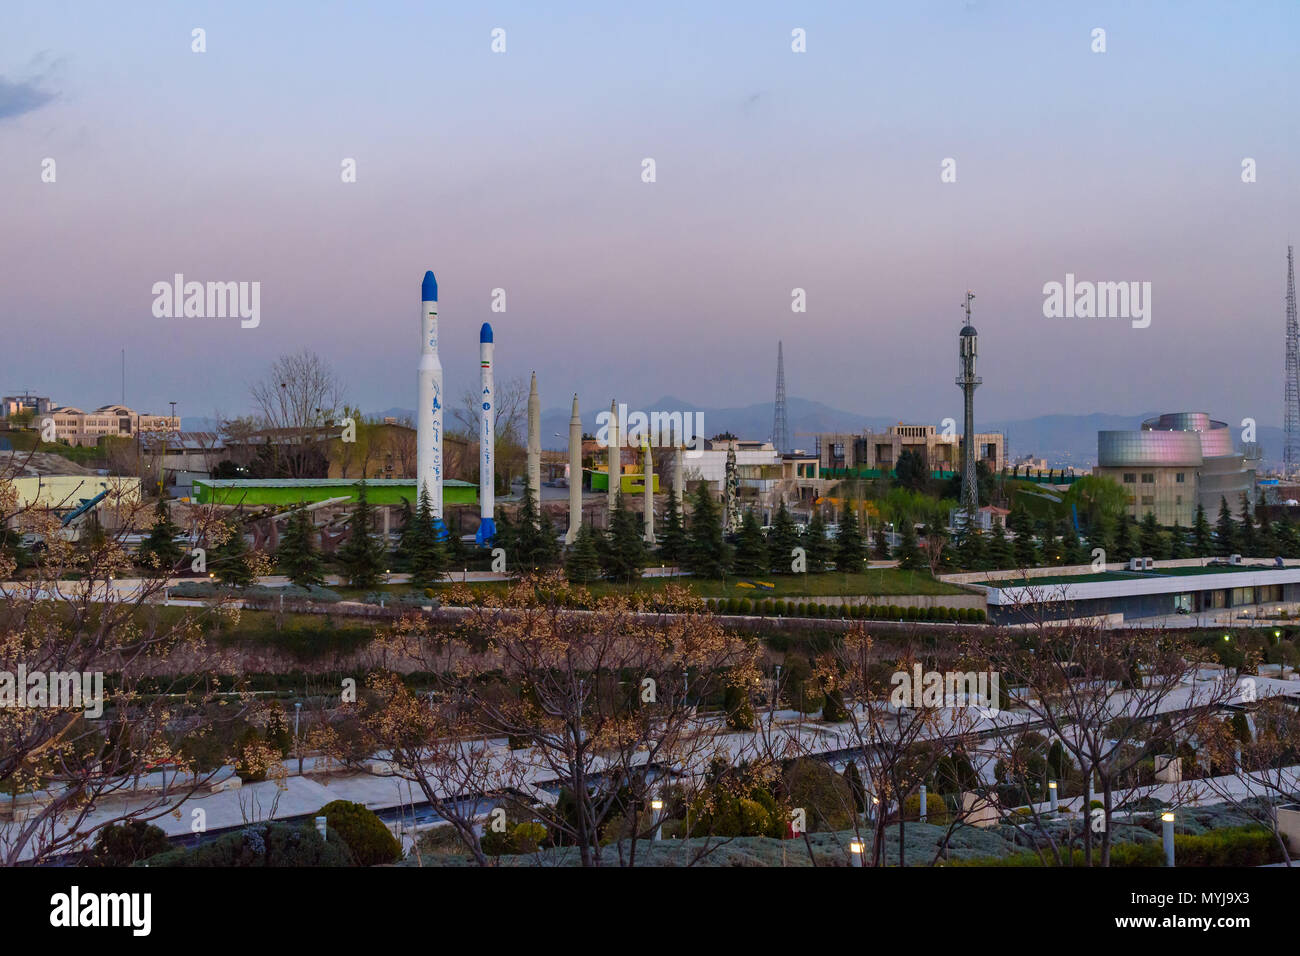 Tehran, Iran - March 18, 2018: View of Iranian missiles in Holy Defense Museum at sunset - Stock Image